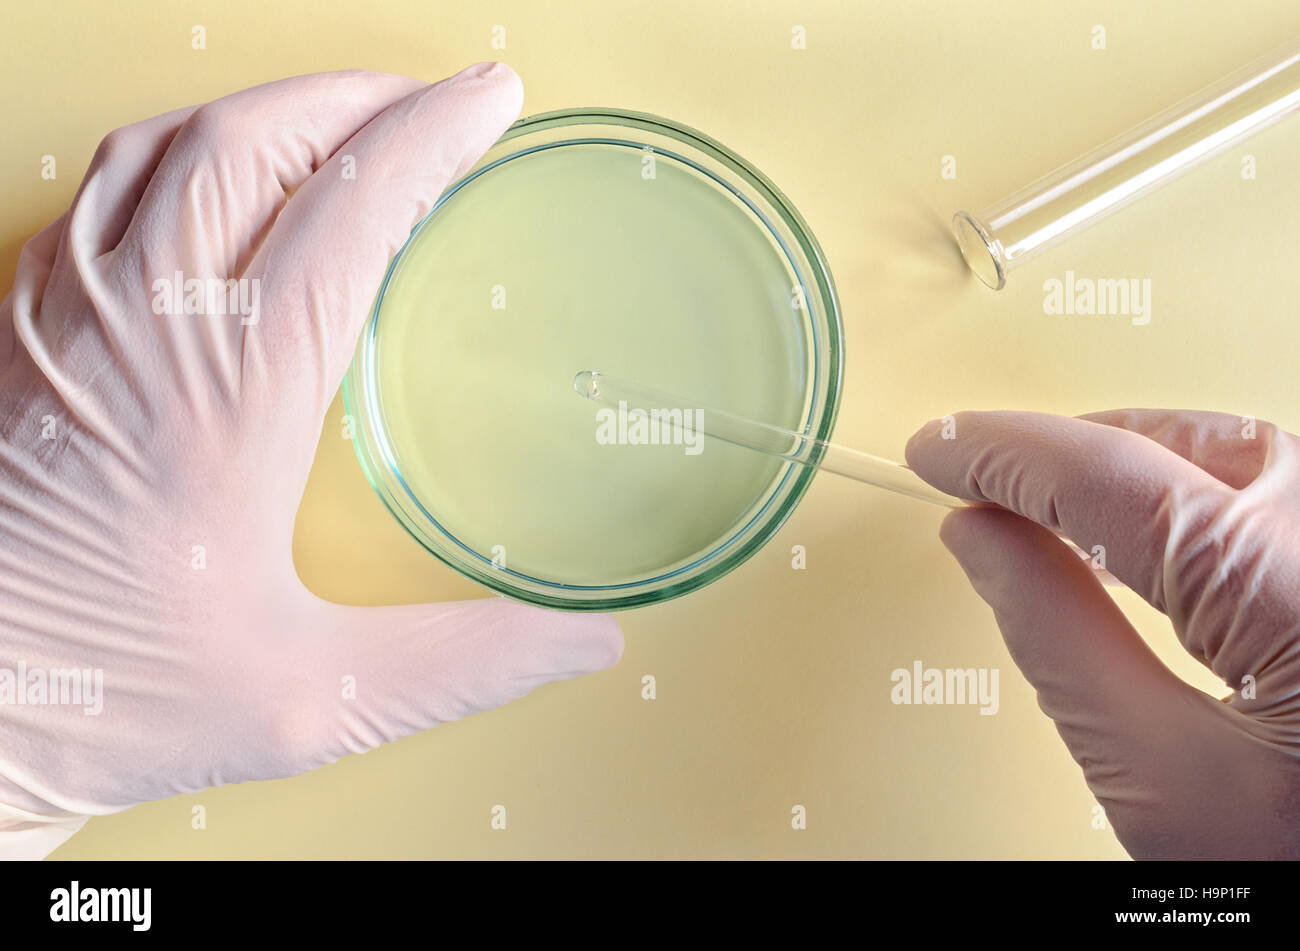 Chemical research in Petri dishes on blue background. Researcher preparing color plates in a microbiology laboratory. - Stock Image